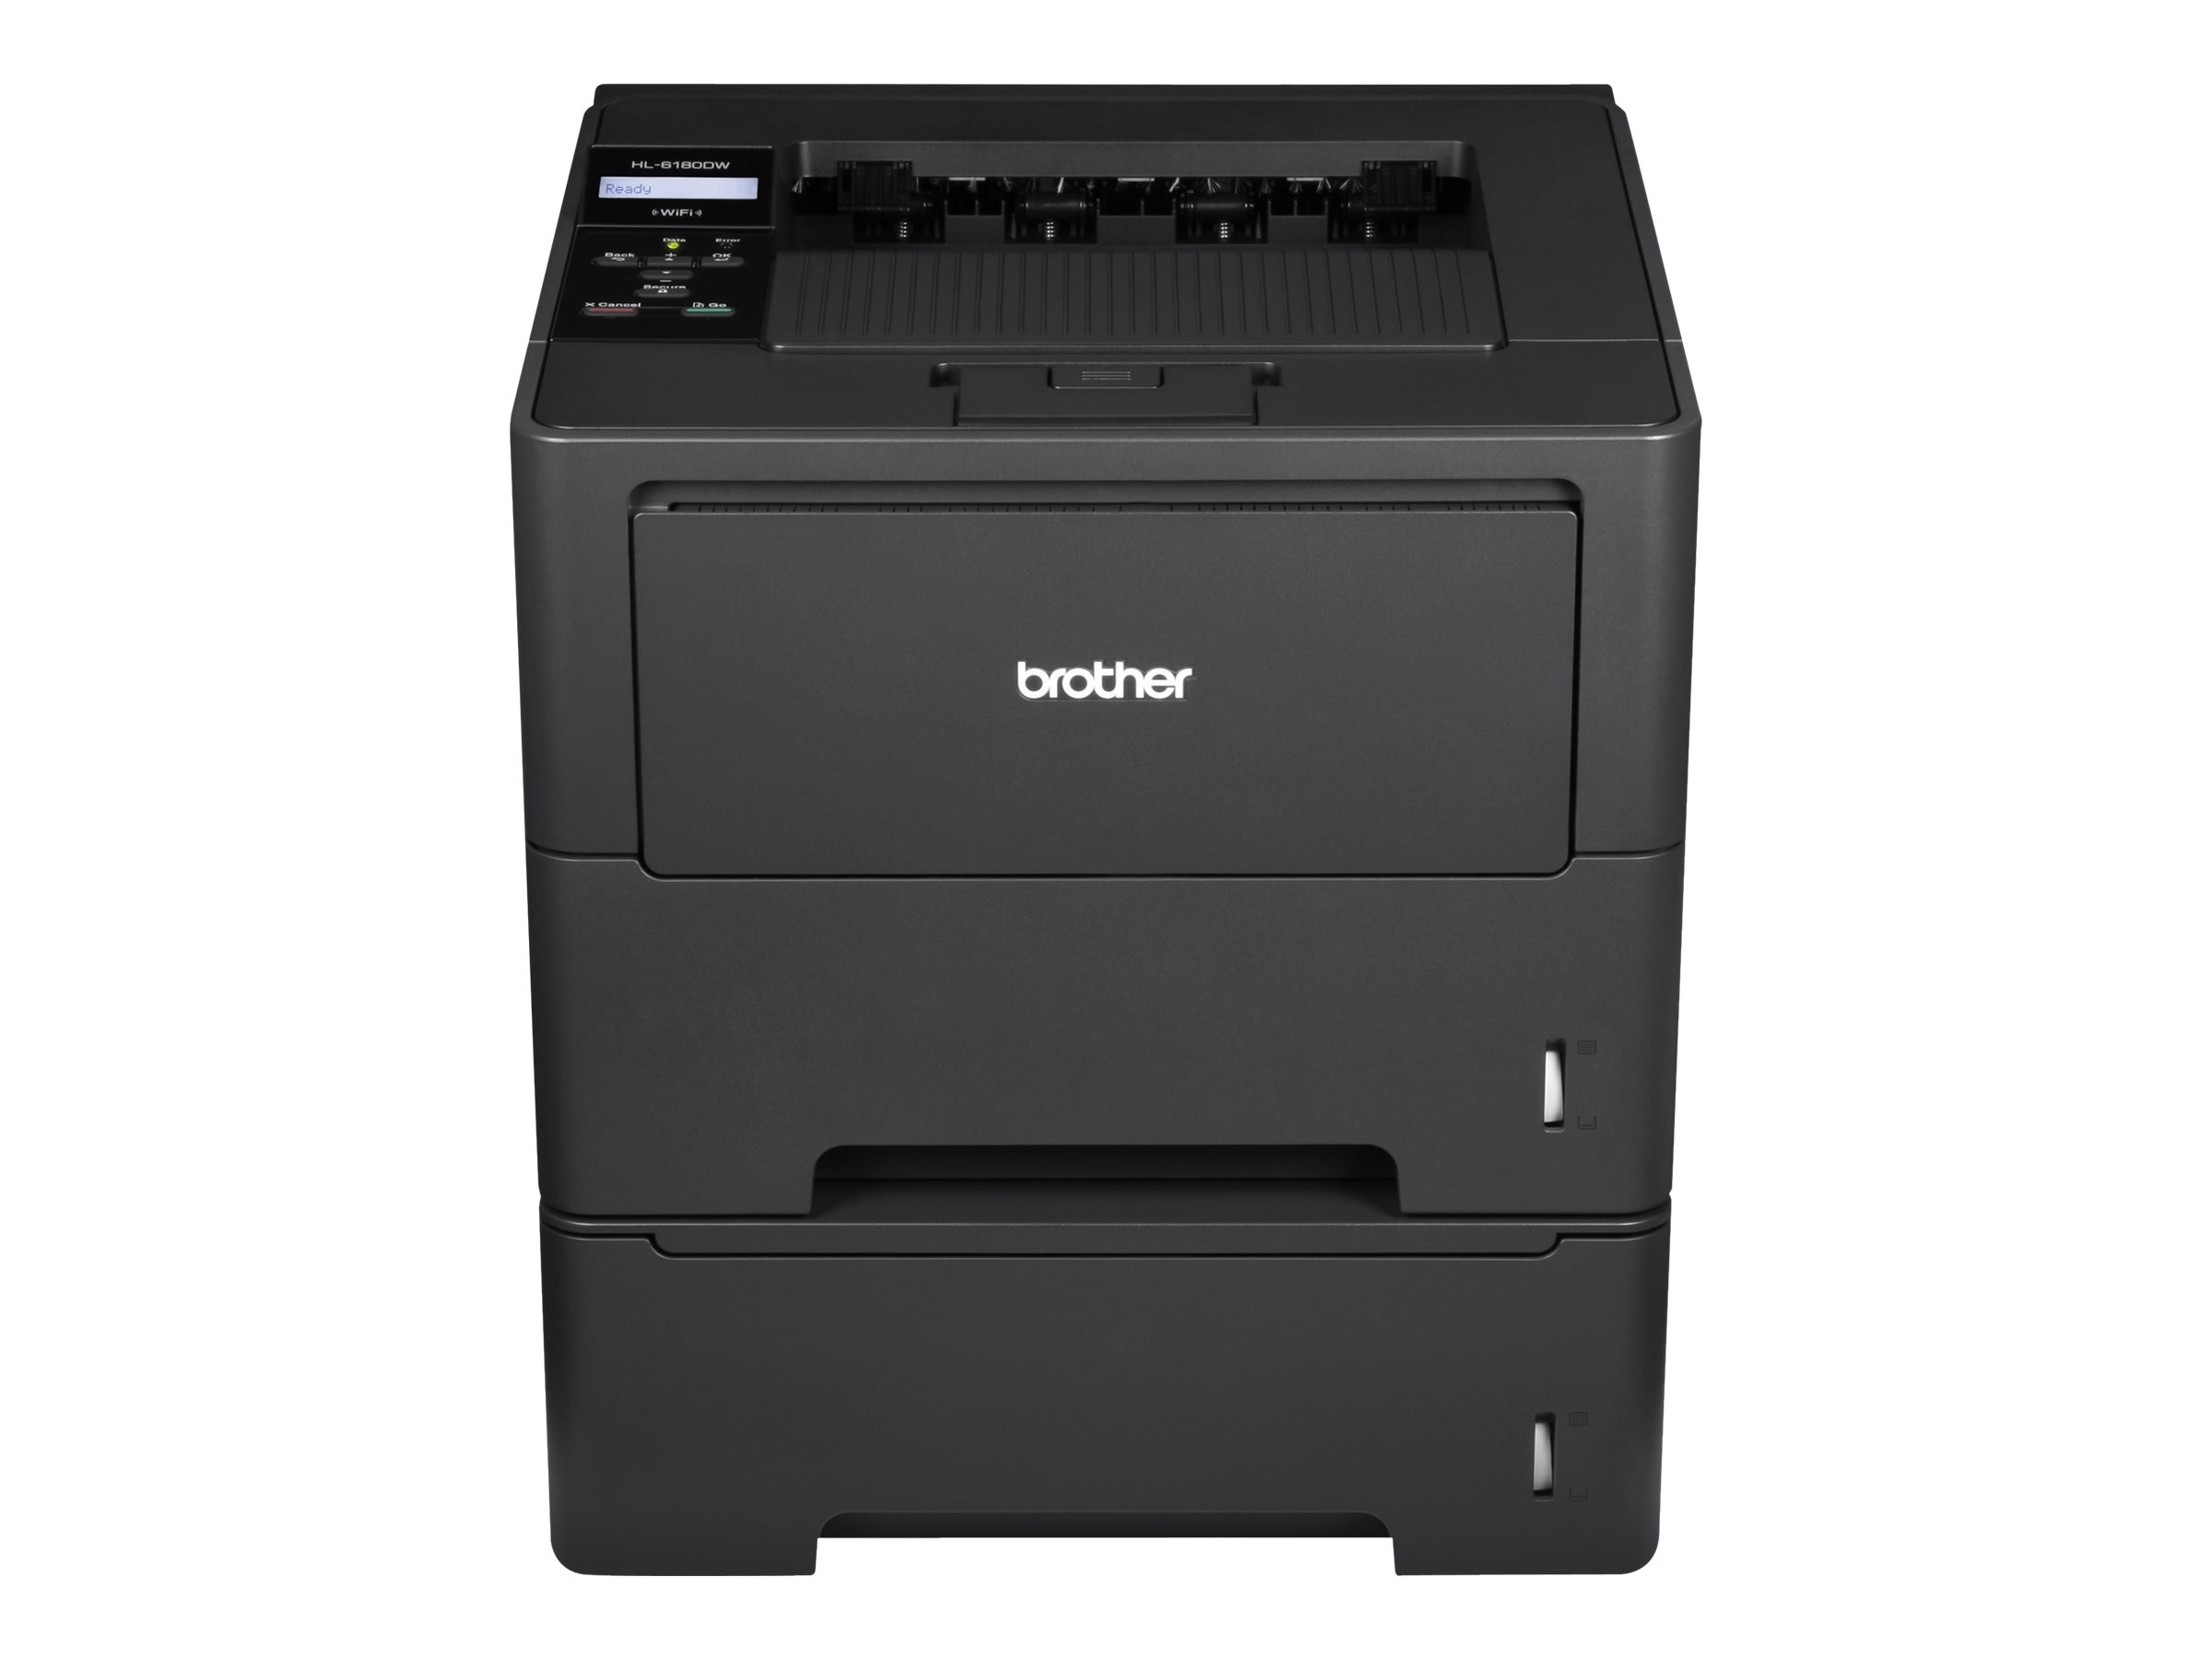 Brother HL-6180DWT Laser Printer, HL-6180DWT